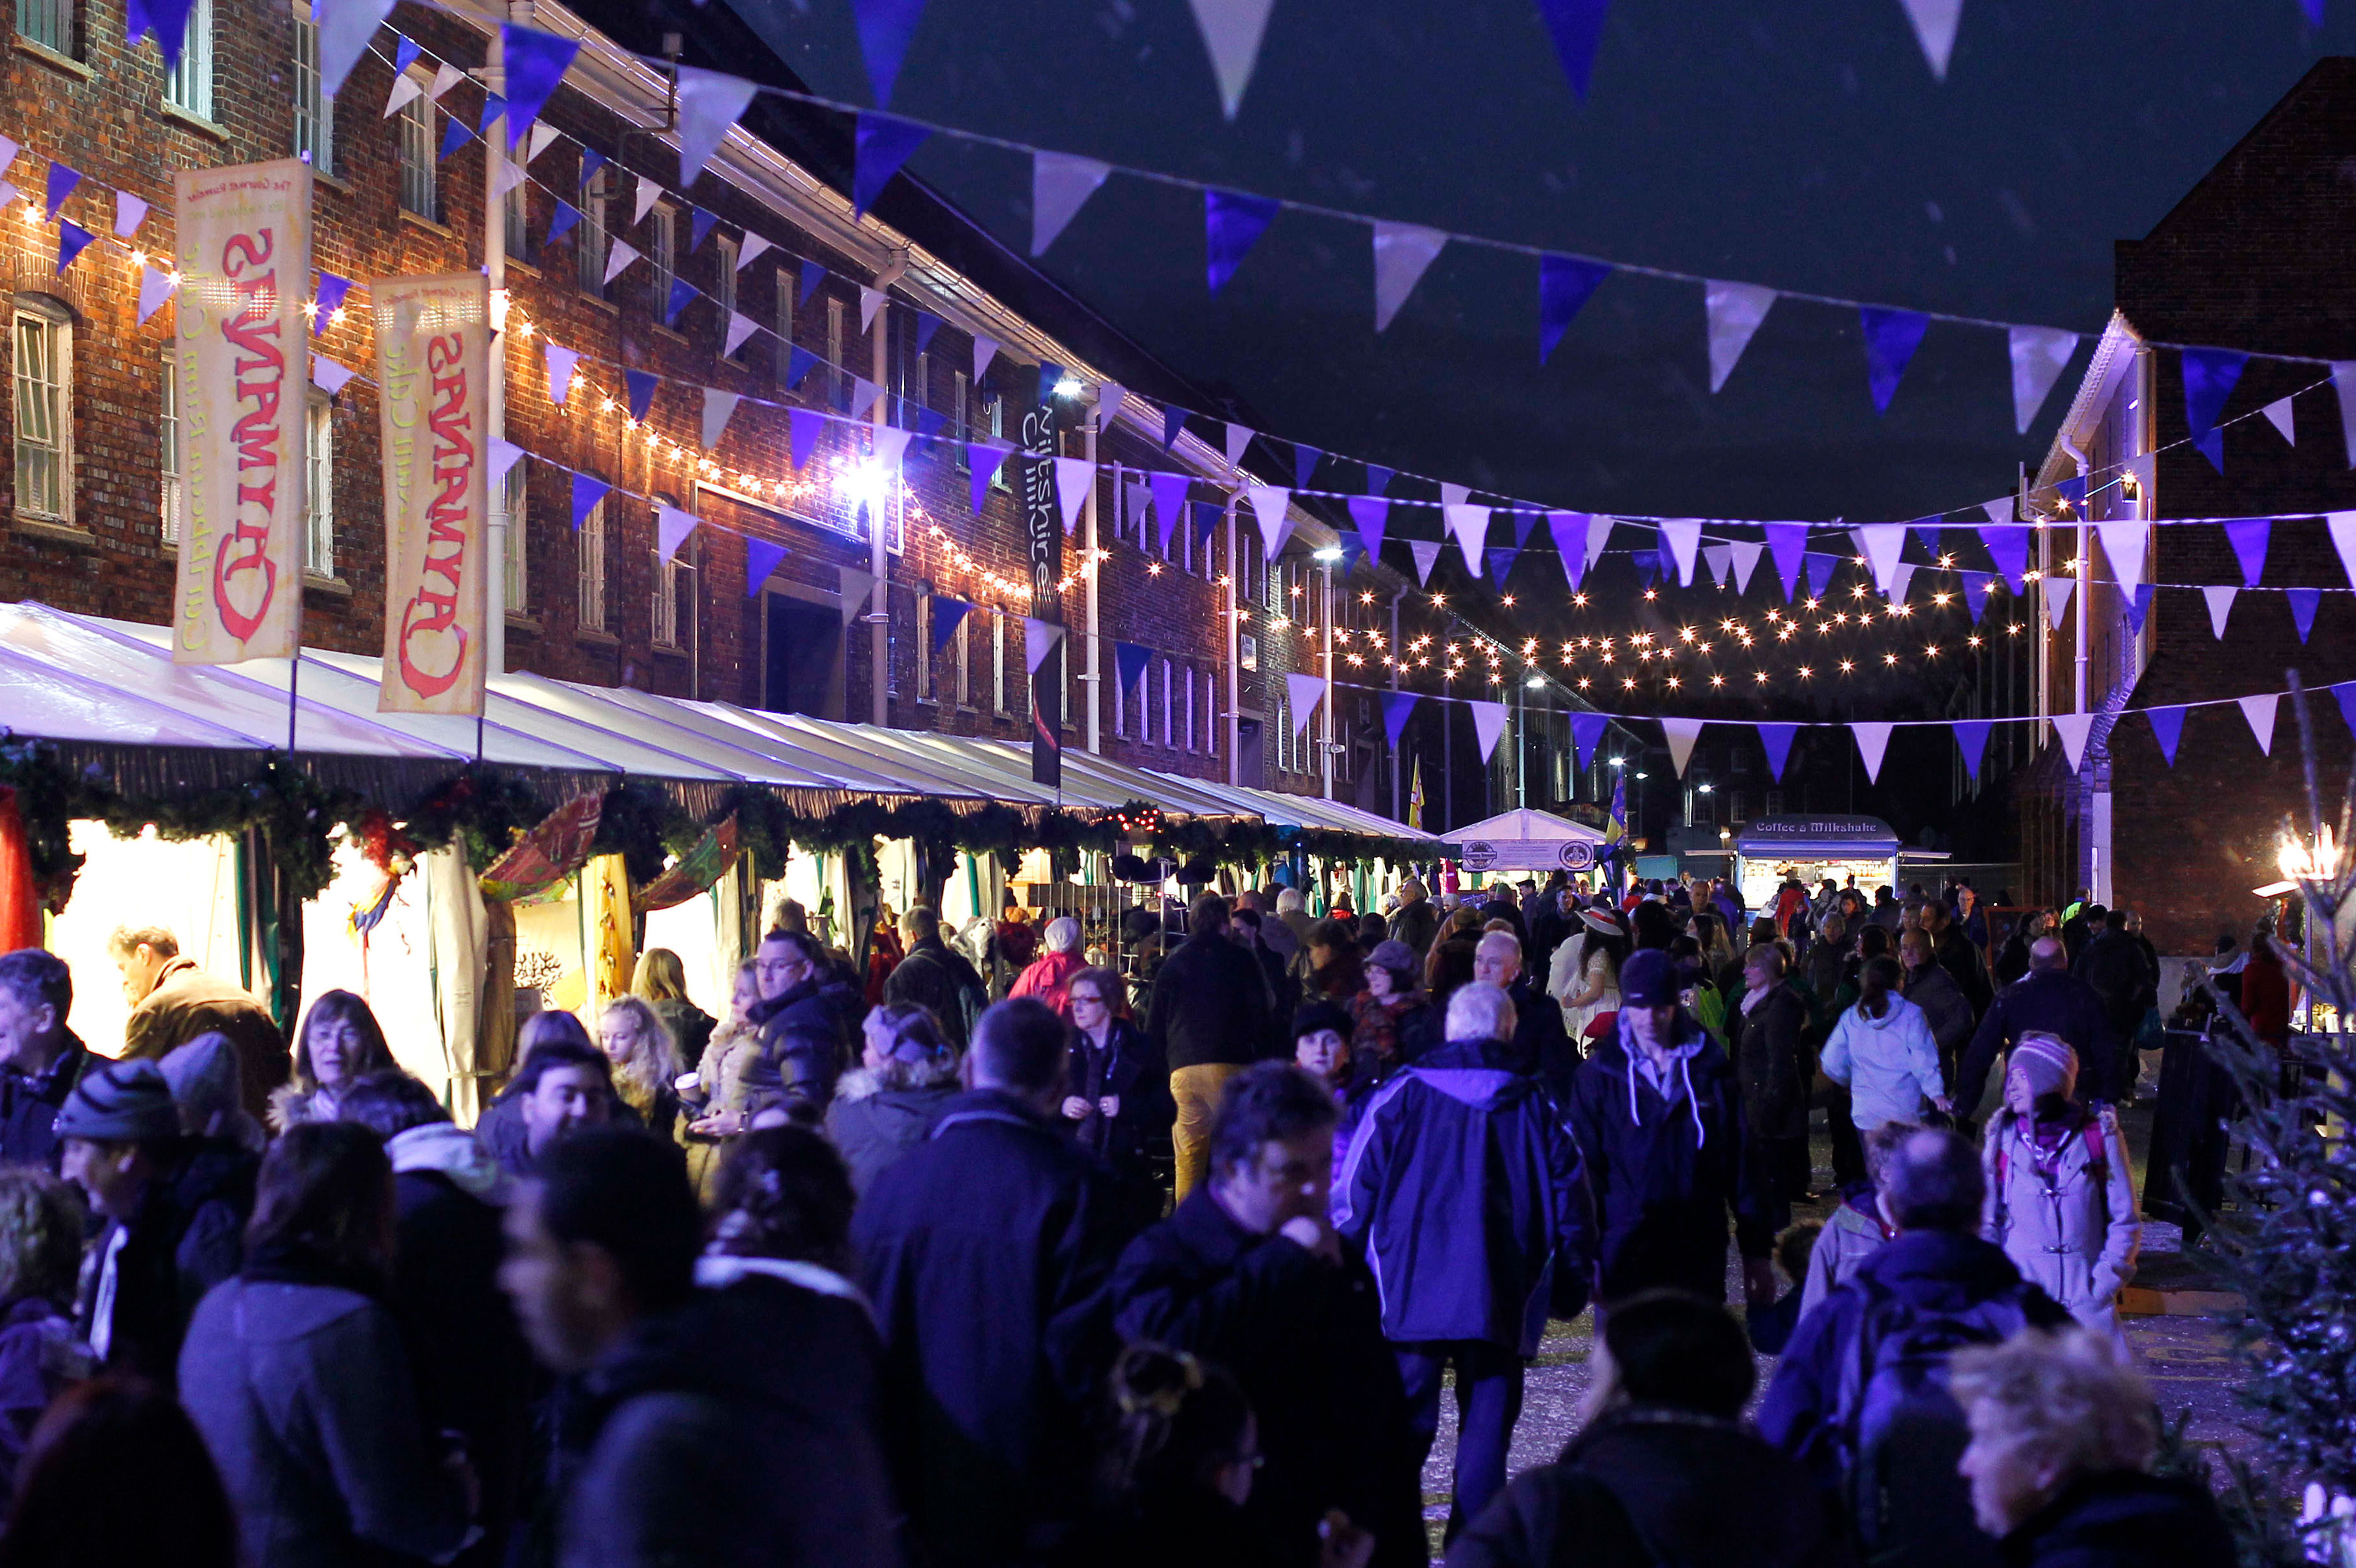 Check out our Dickens Christmas Festival event guide